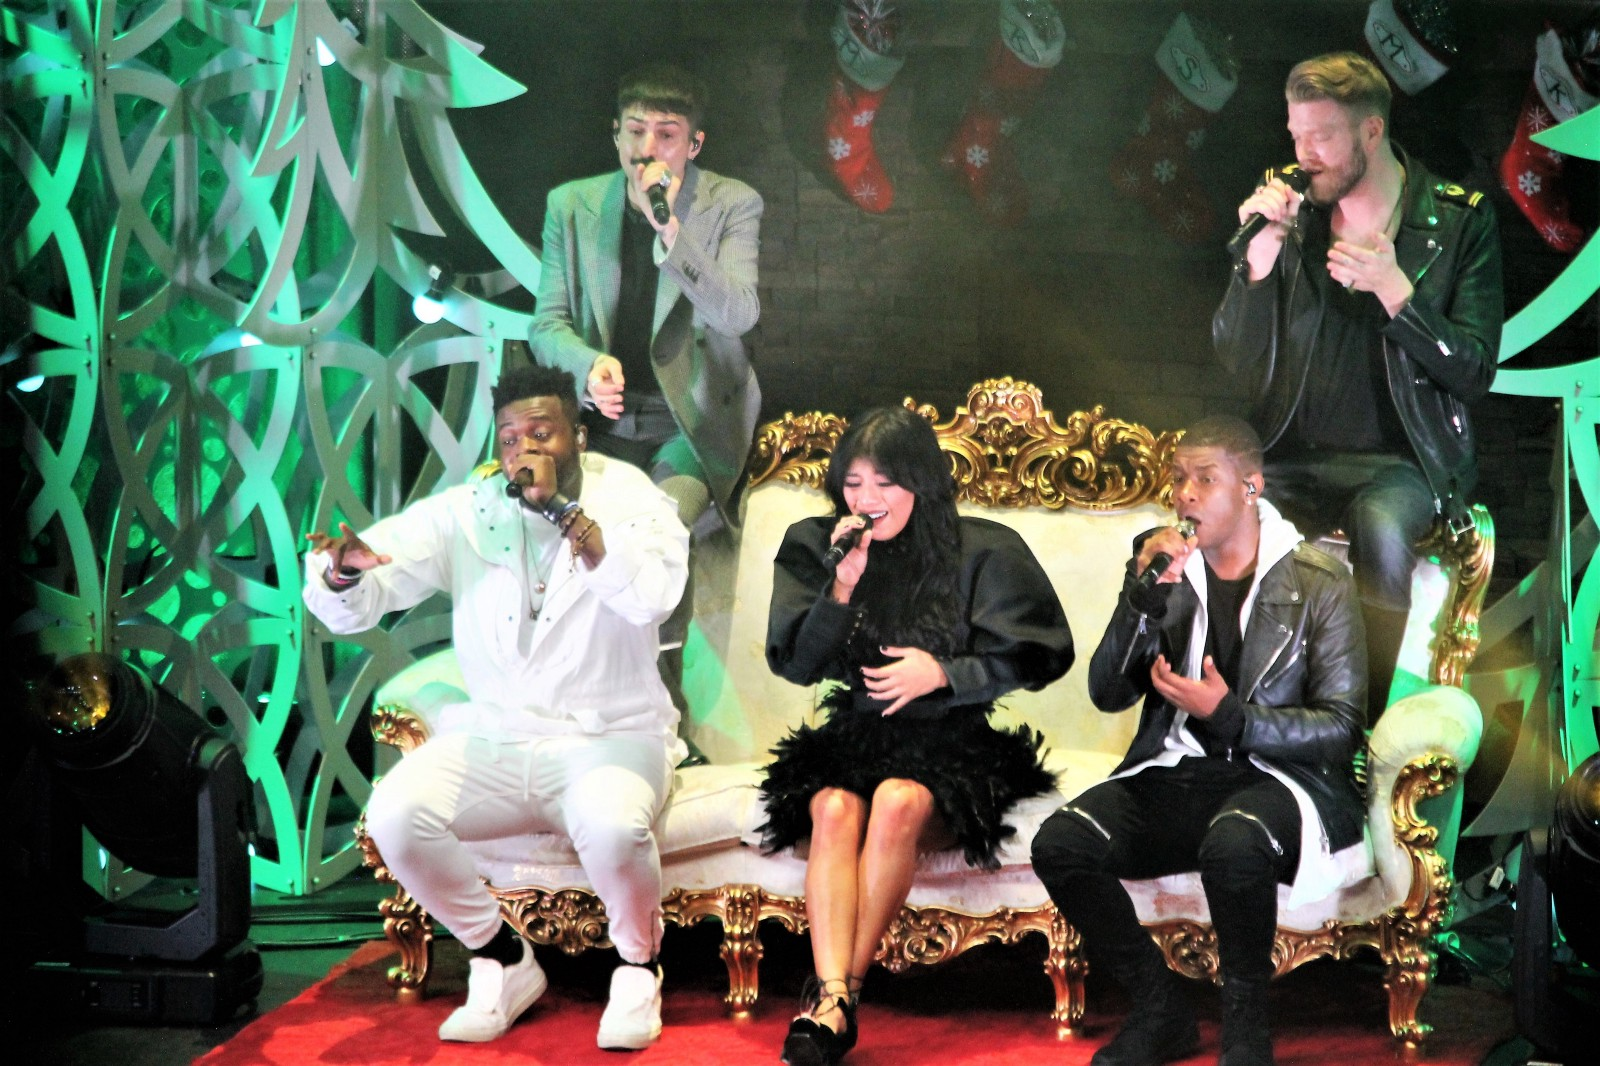 matt sallee and scott hoying performed modern acapella versions of holiday classics during a pentatonix christmas tour at tower theater